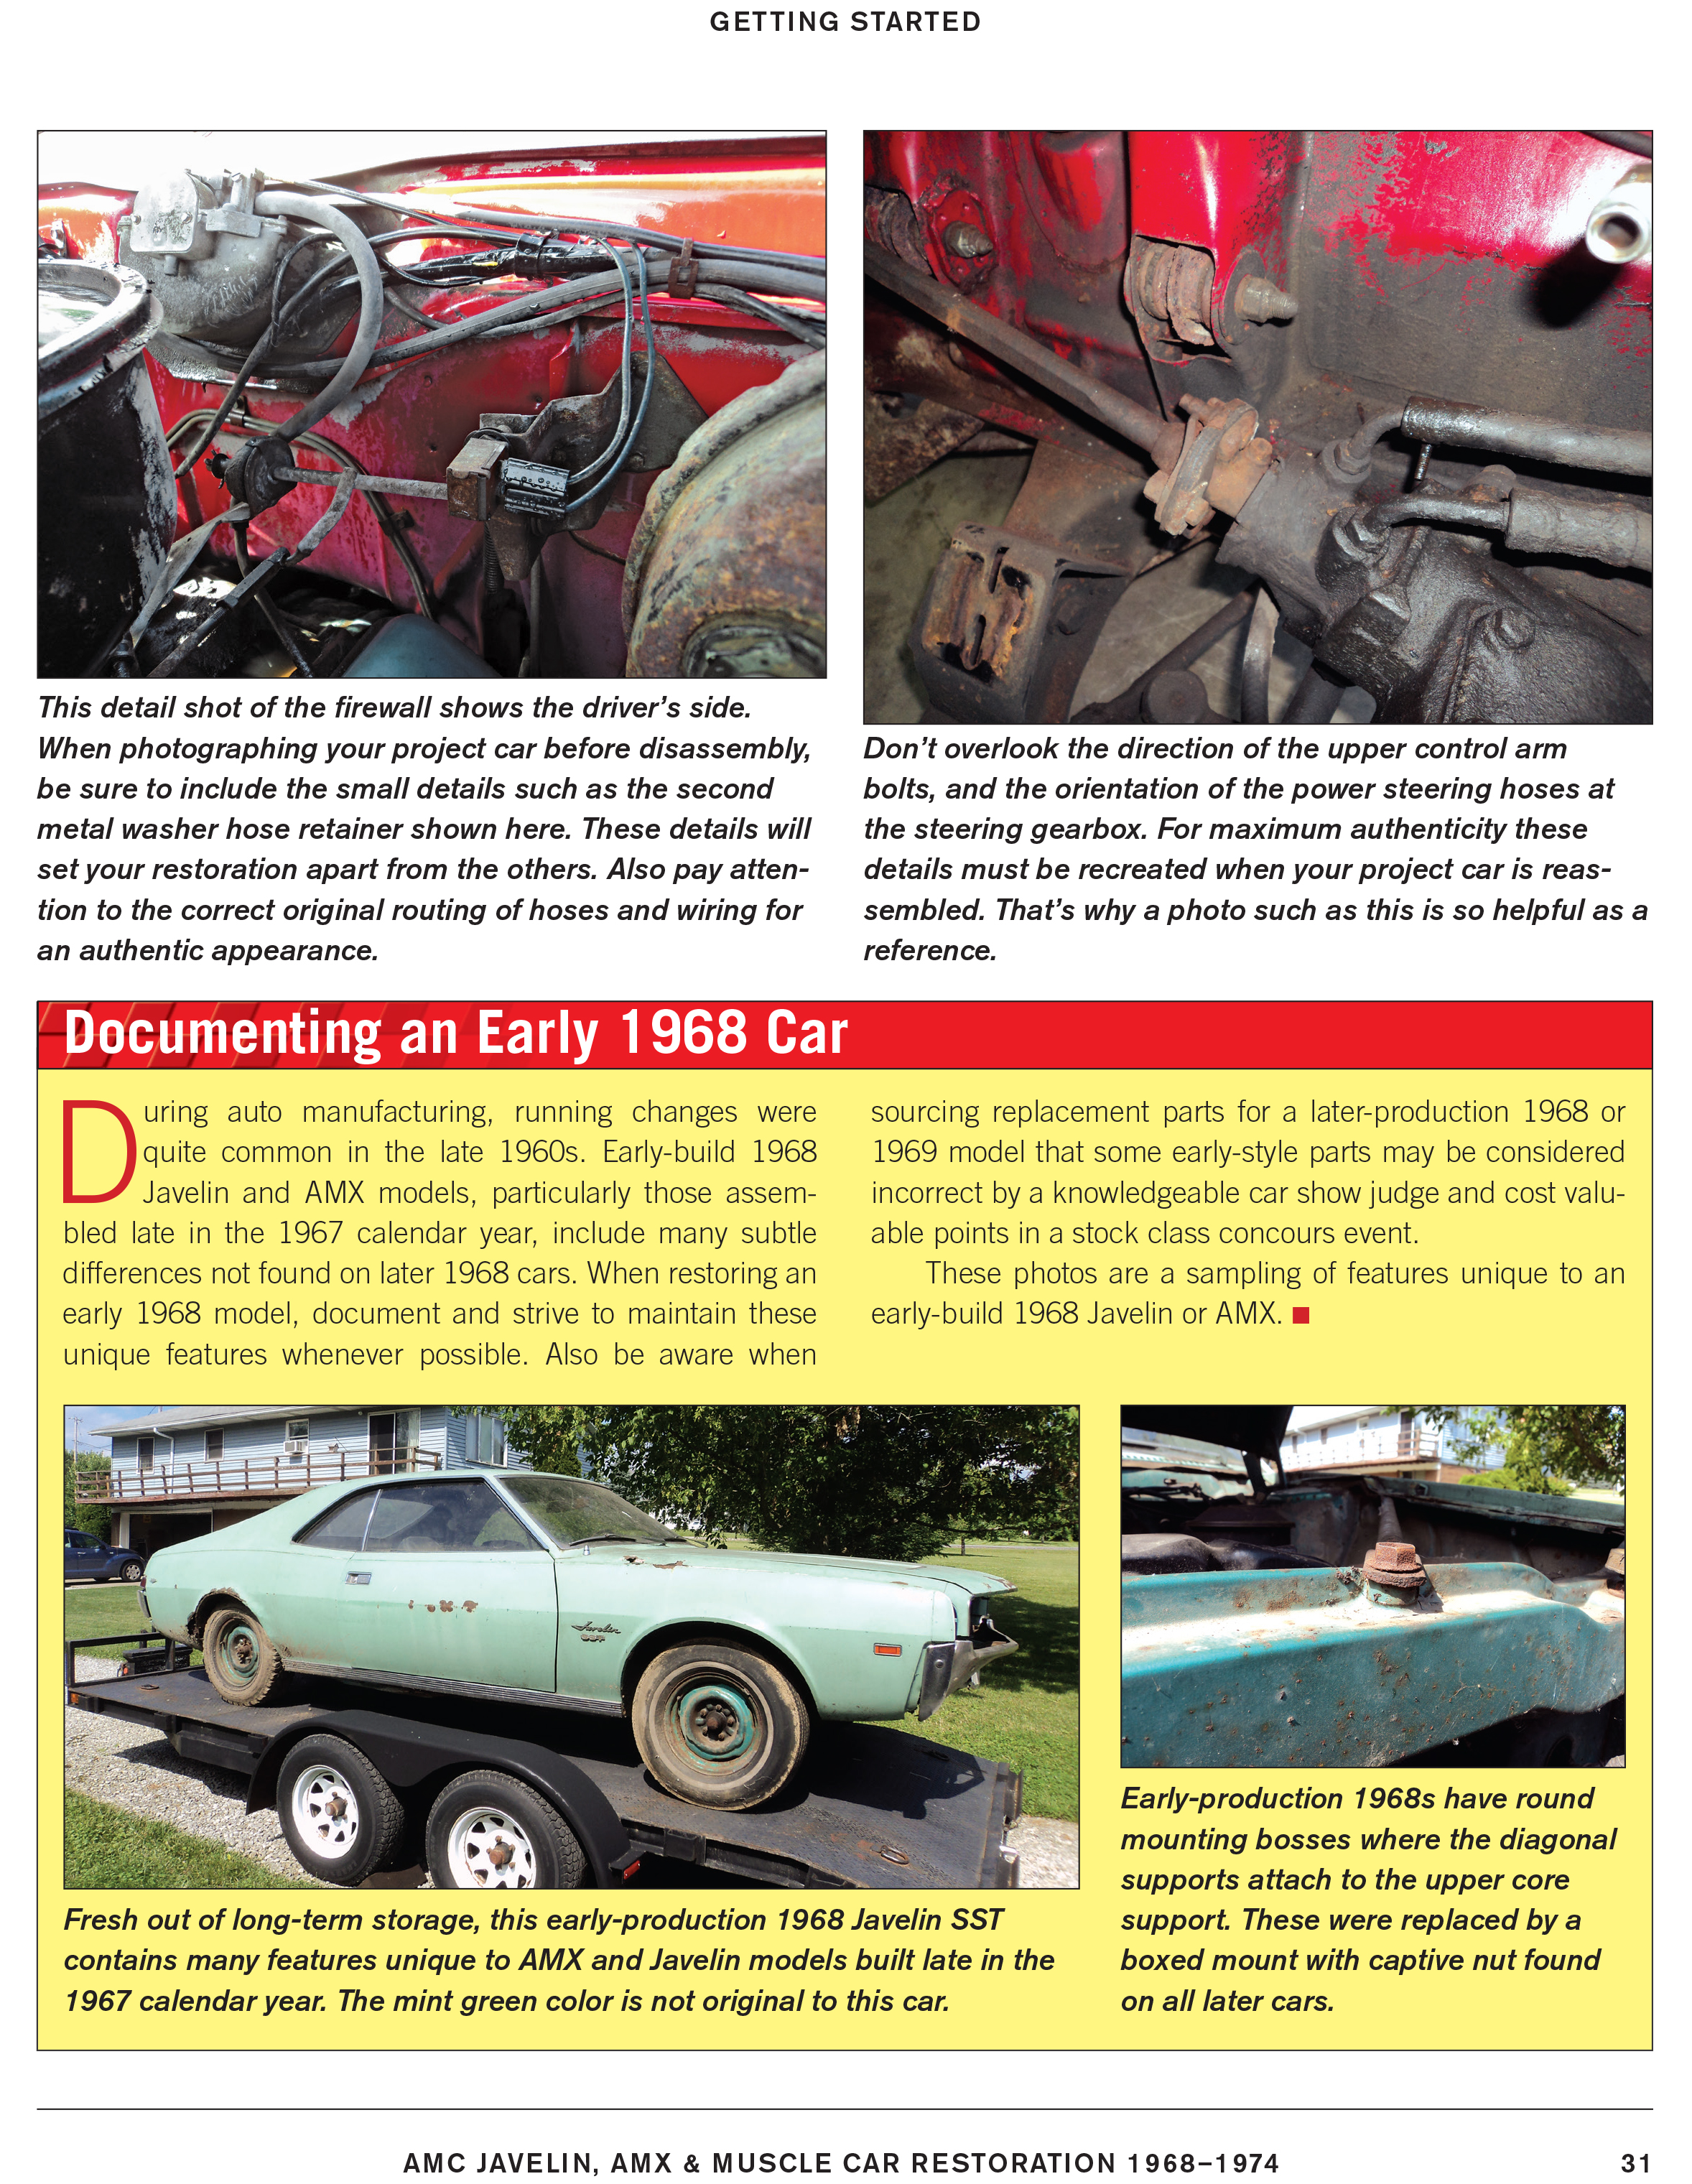 Sentinel AMC Javelin AMX 1968-75 Muscle Car Restoration Manual guide for  project car